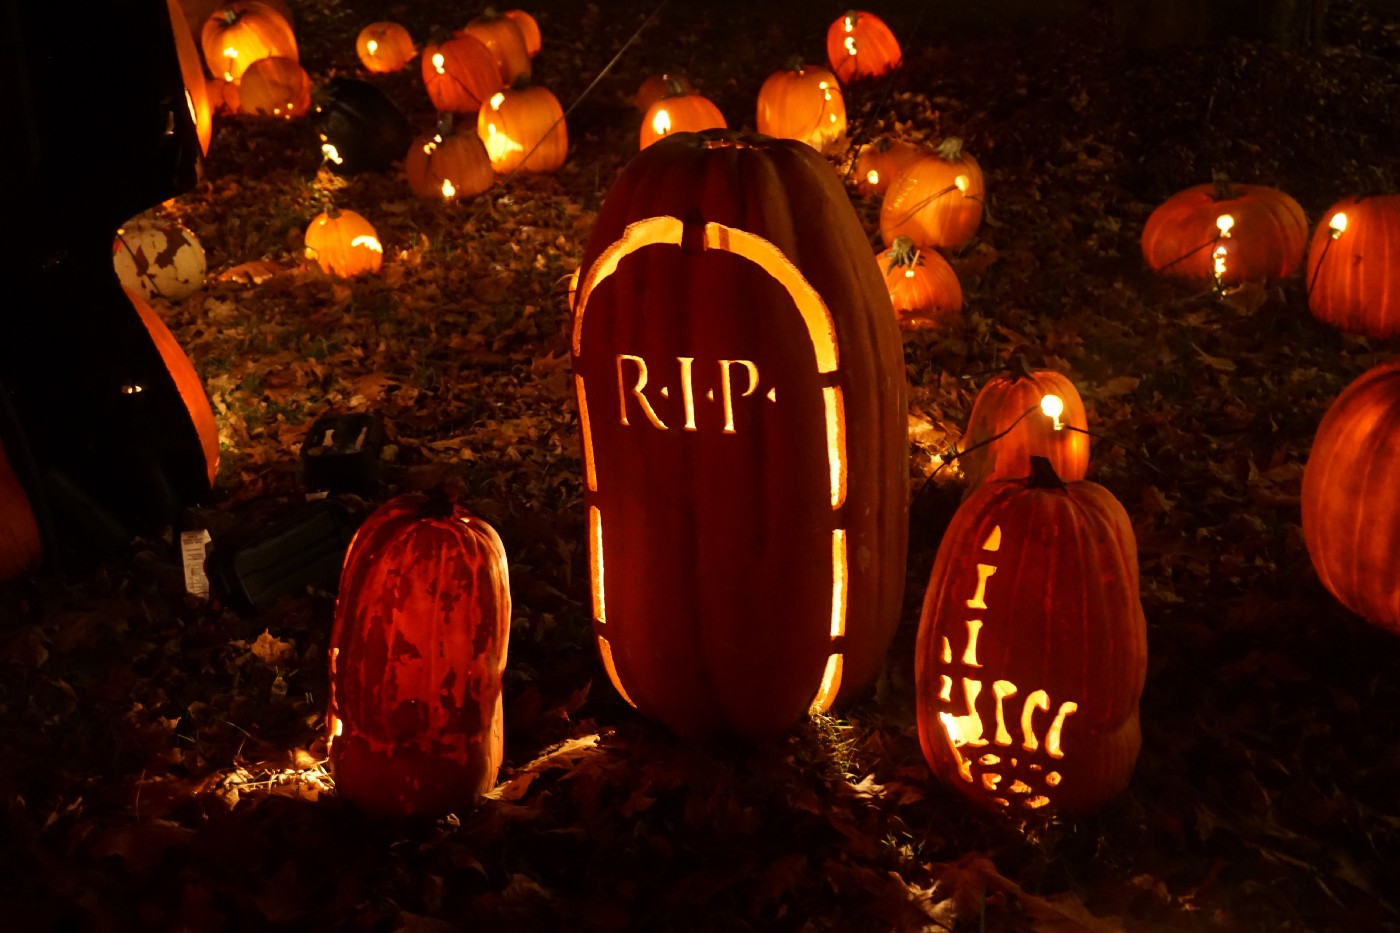 Three carved pumpkings, lit up at night. The middle one says RIP.